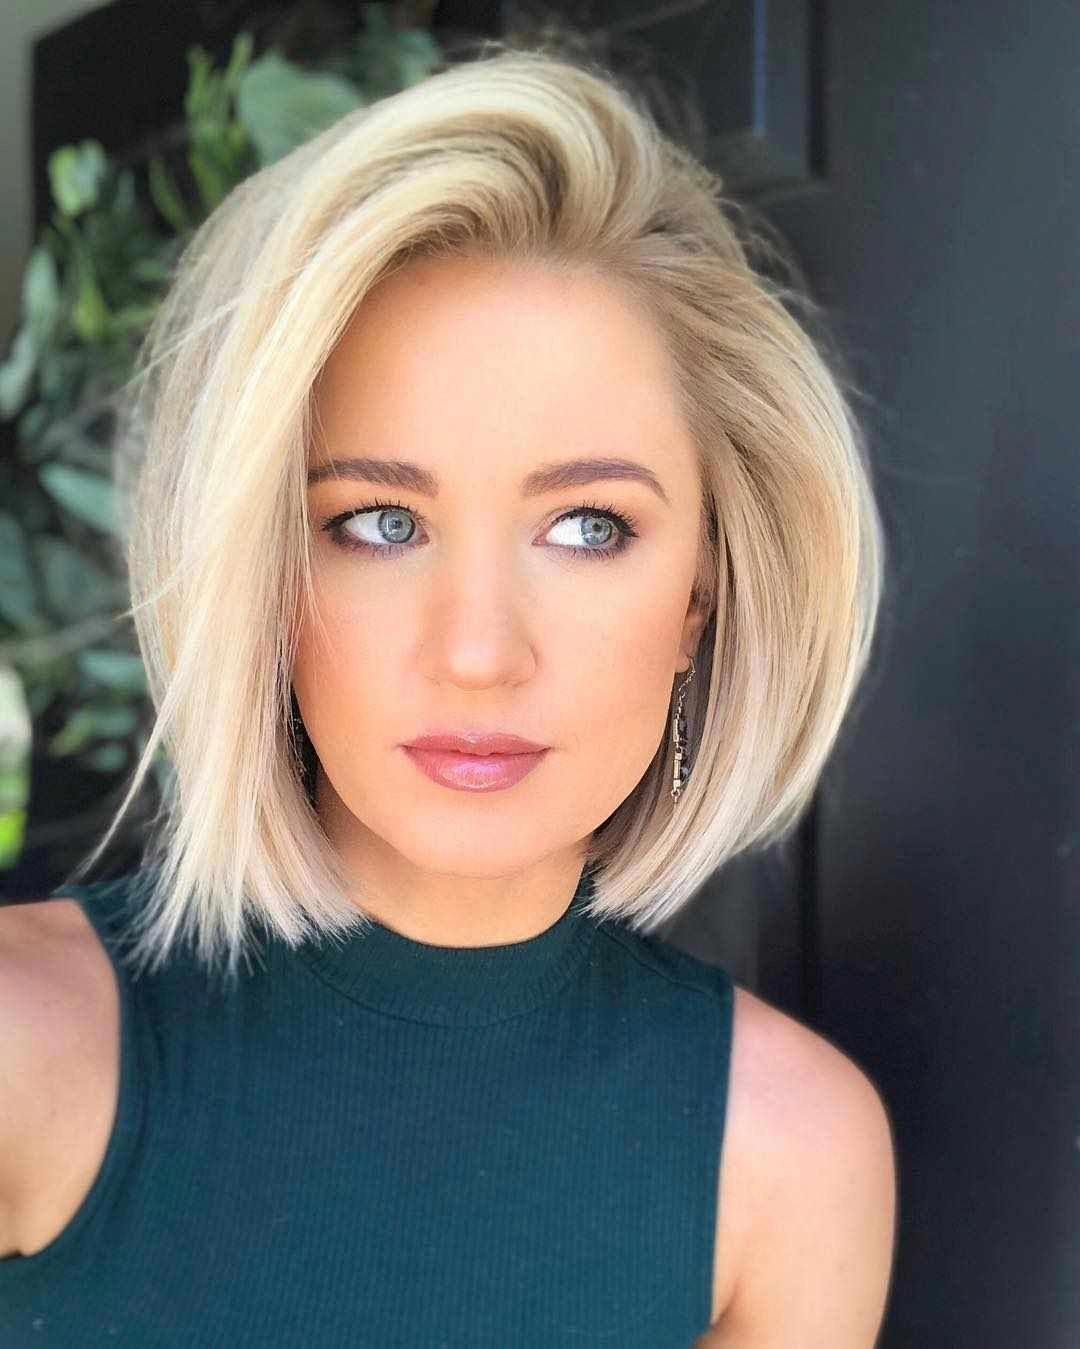 Bob Haircuts: 60 Hottest Bob Hairstyles for 2019 - Hairstyles Trends